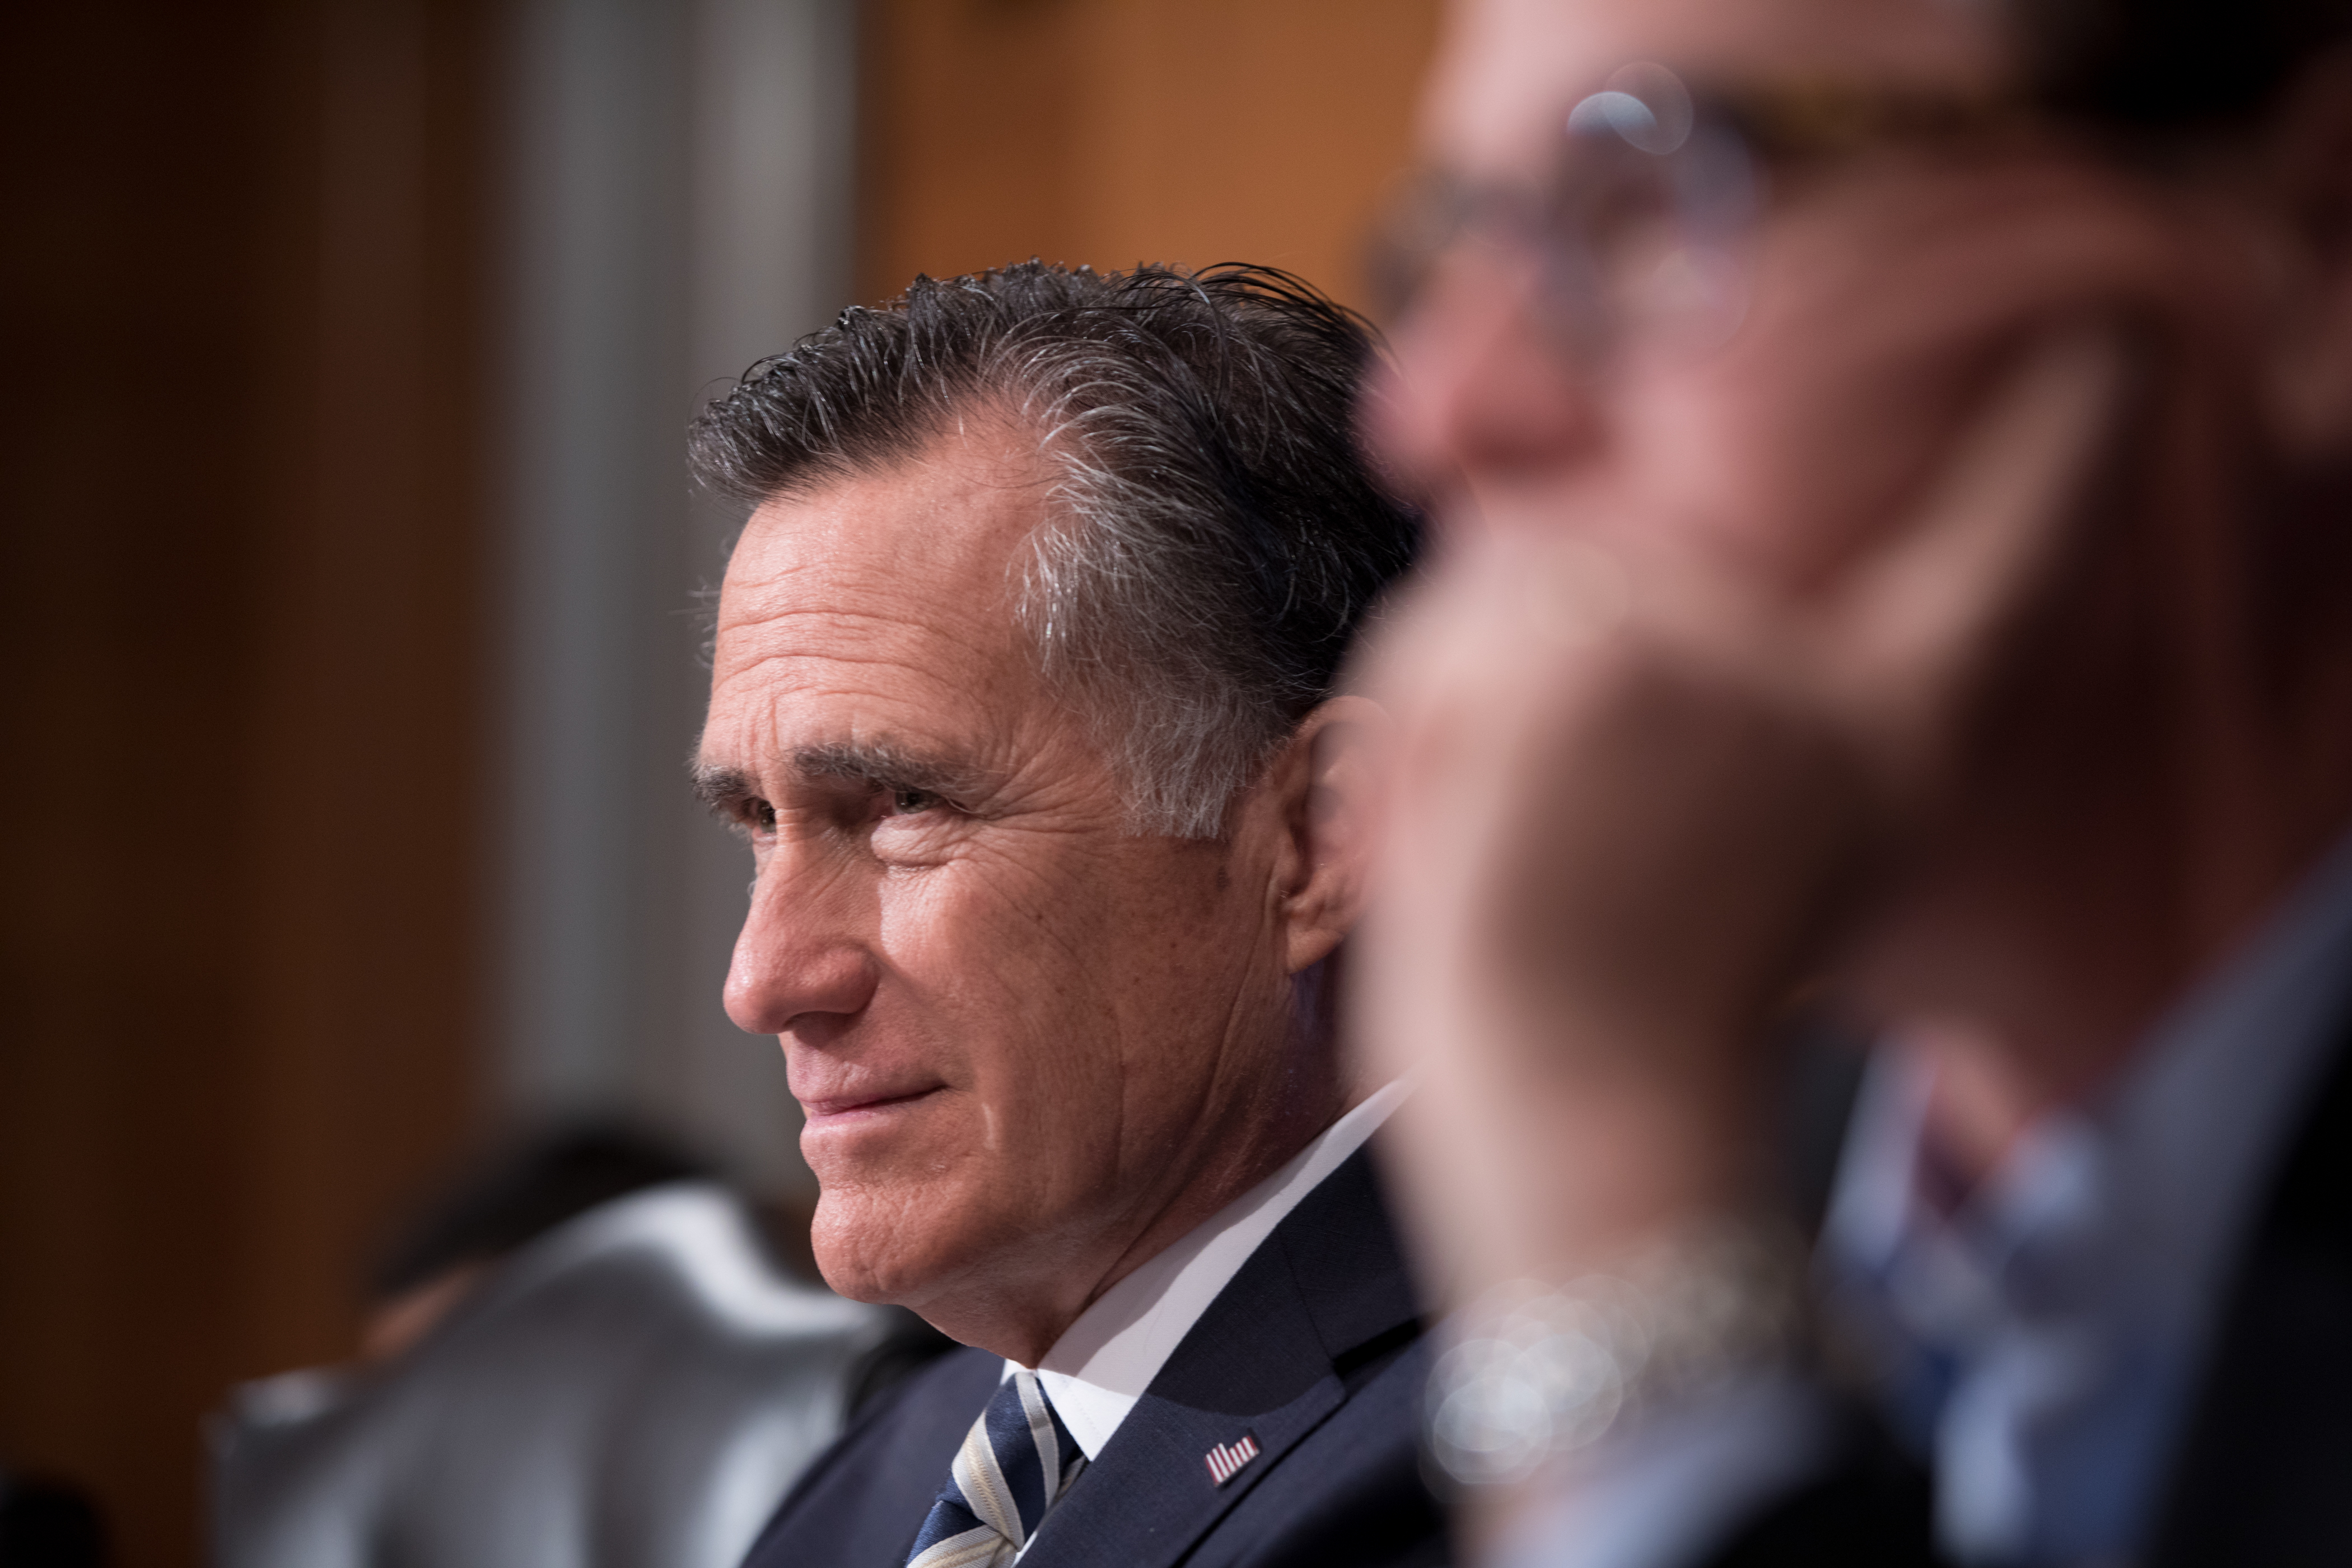 FILE - Senator Mitt Romney, R-Utah, attends the HELP Hearing: Implementing the 21st Century Cures Act on Capitol Hill in Washington, D.C., on March 26, 2019.